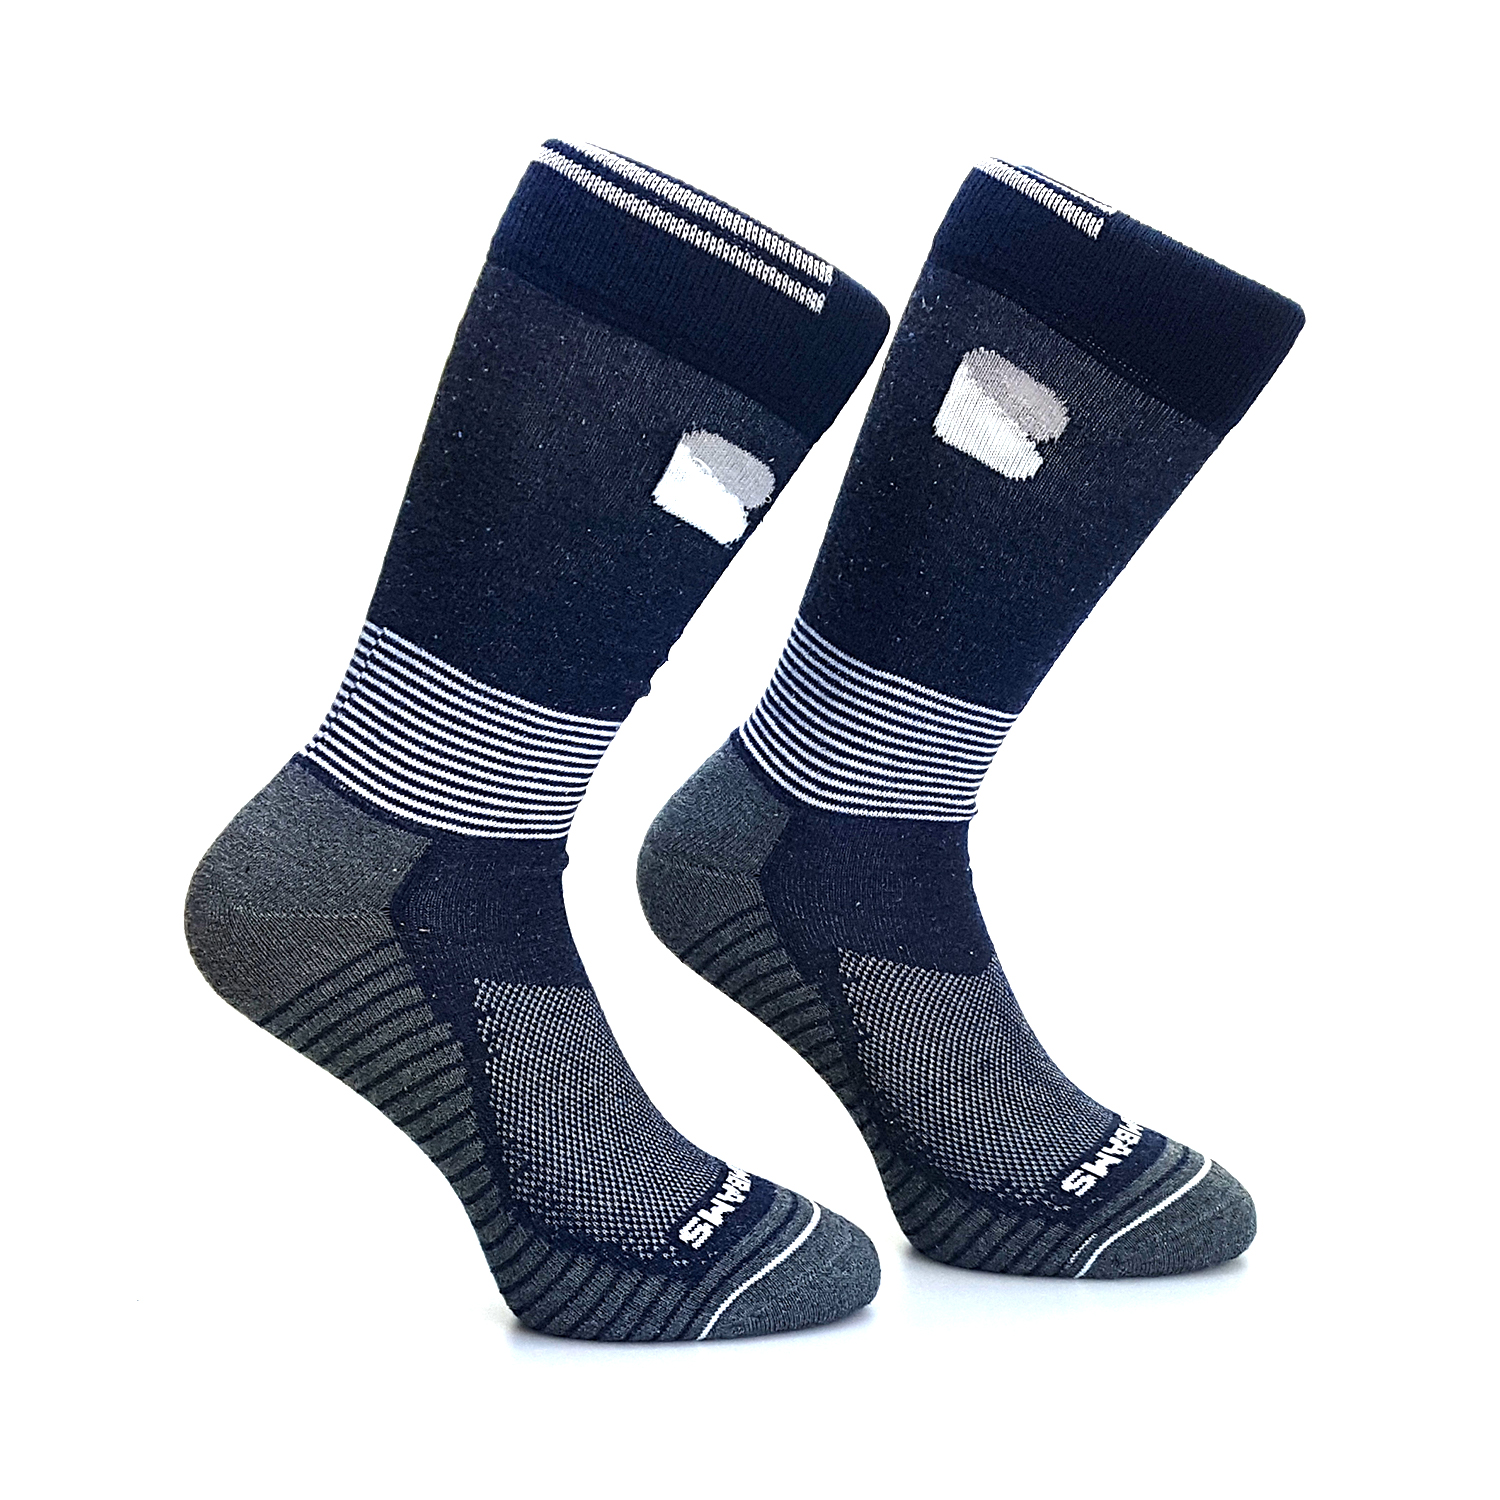 Walking, Running and Sports Socks tailor made